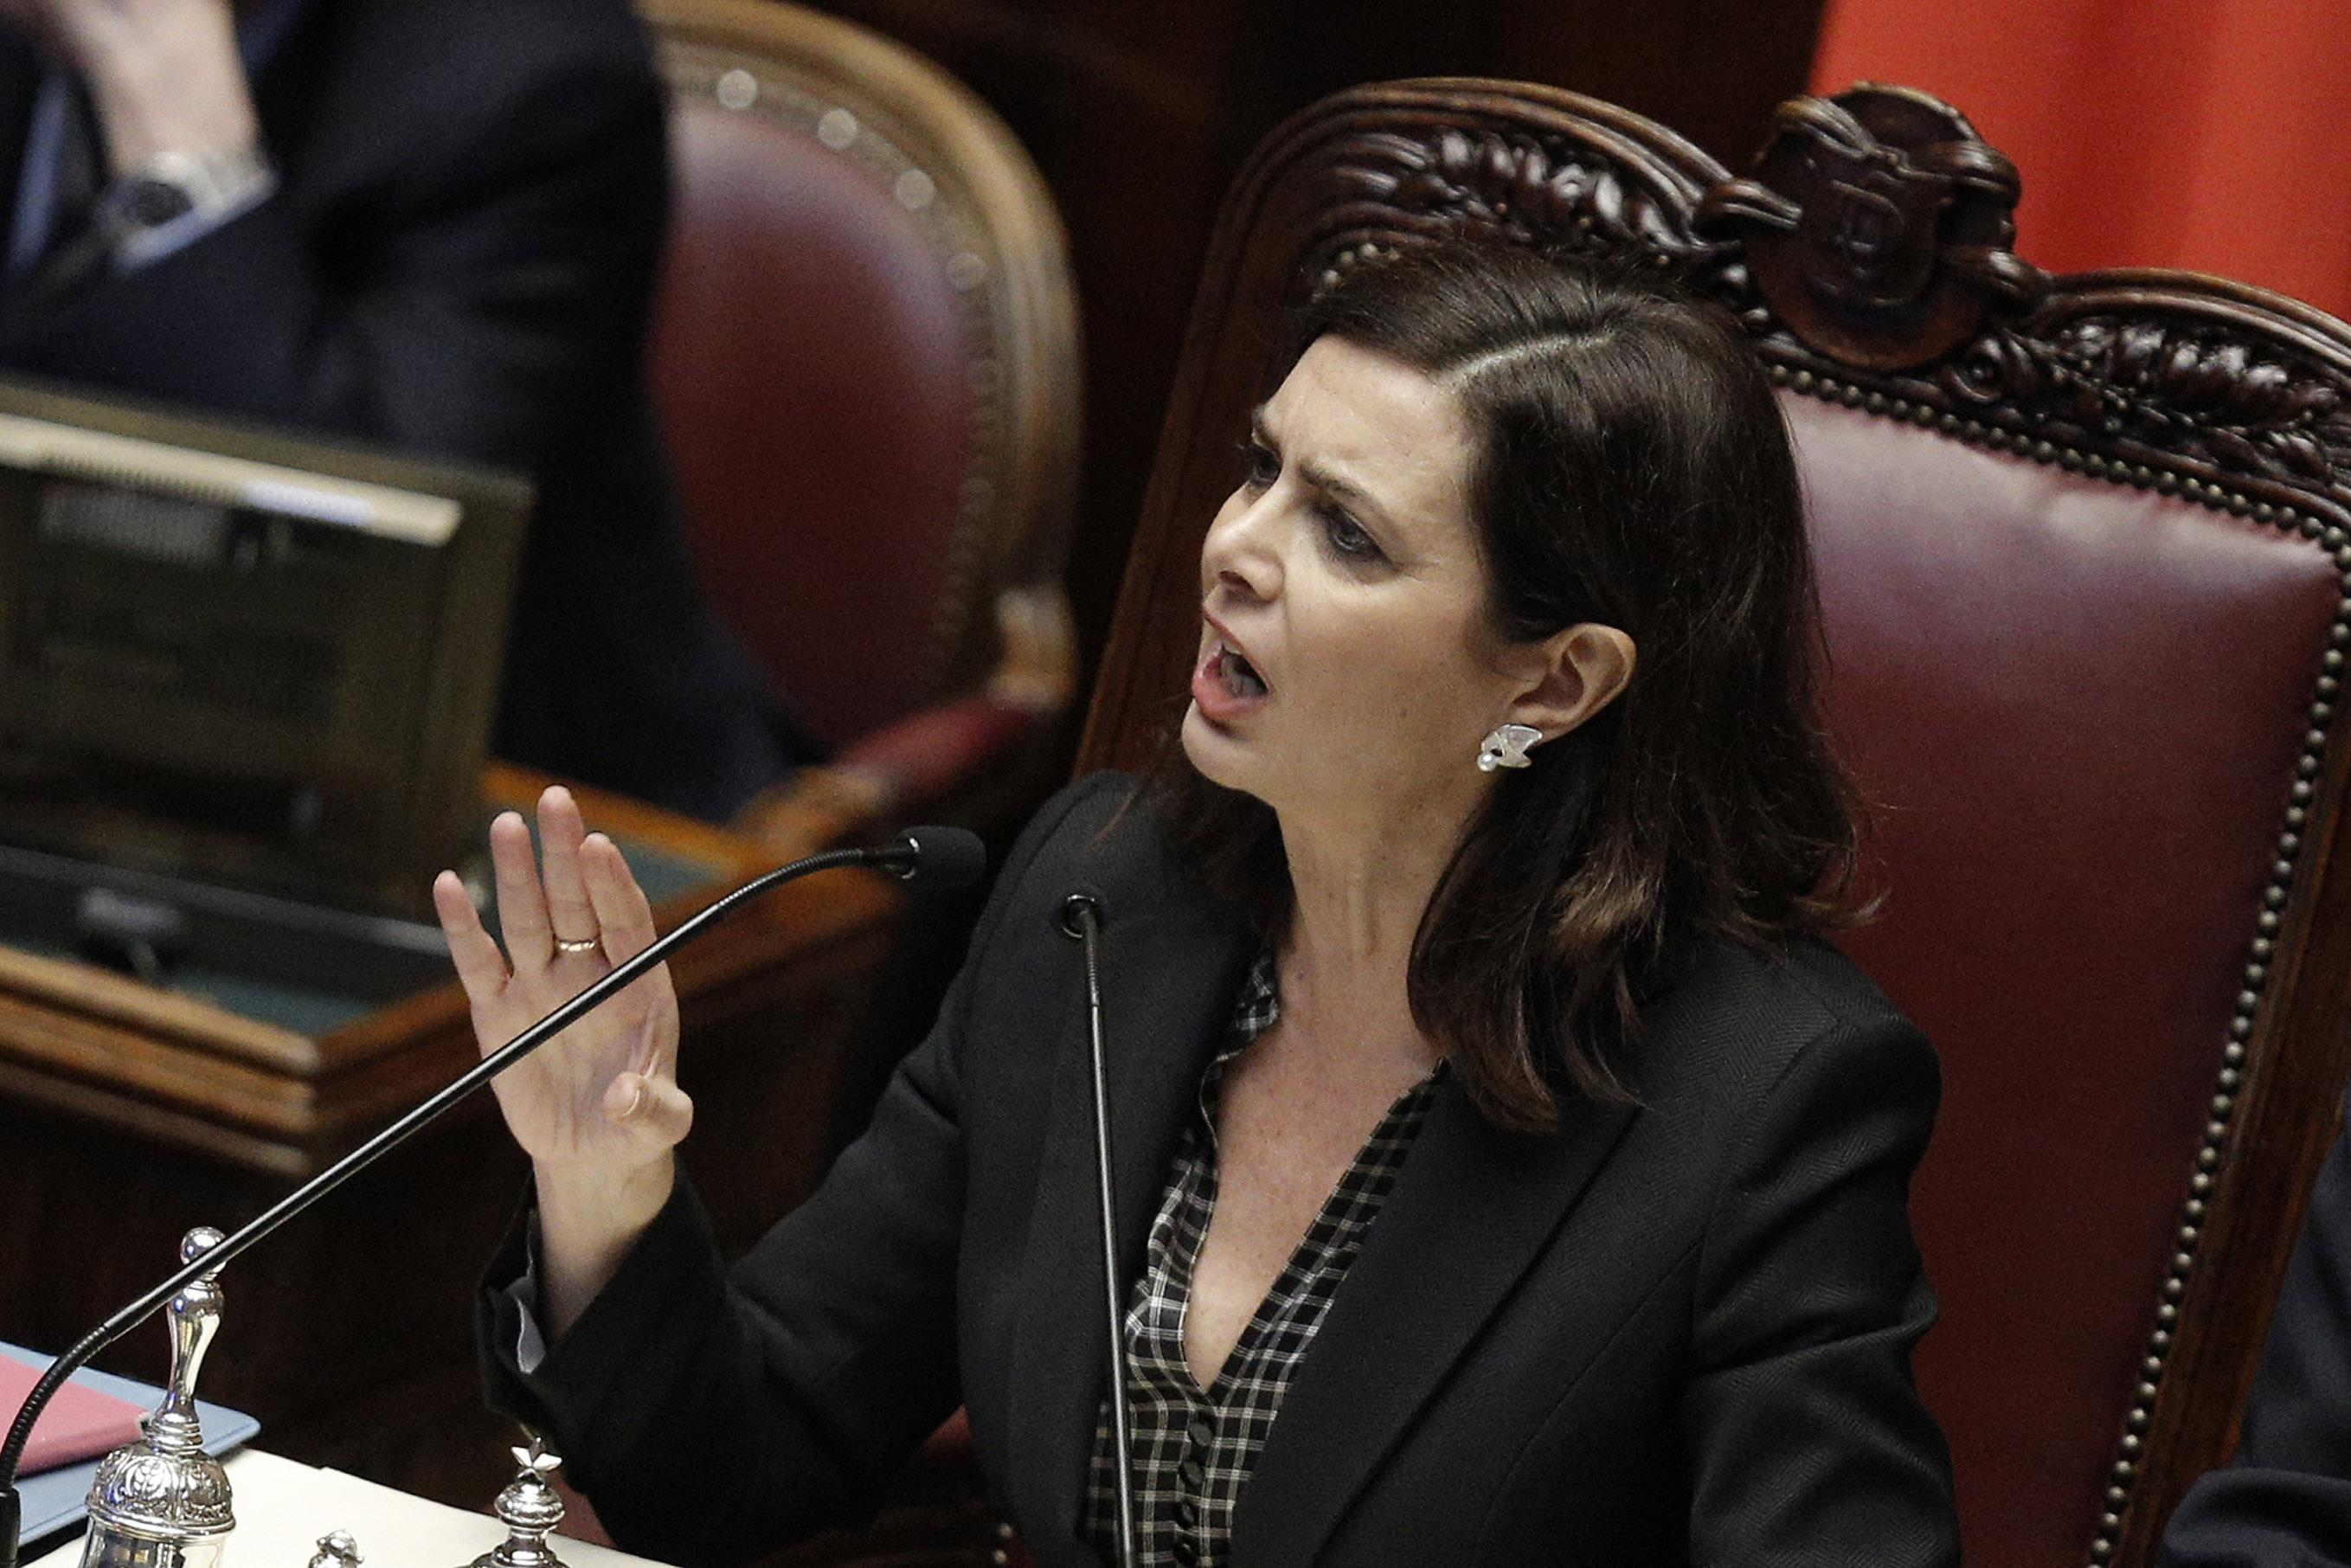 Discorso Camera Boldrini : Boldrini  donne in aula camera ultima ora ansa